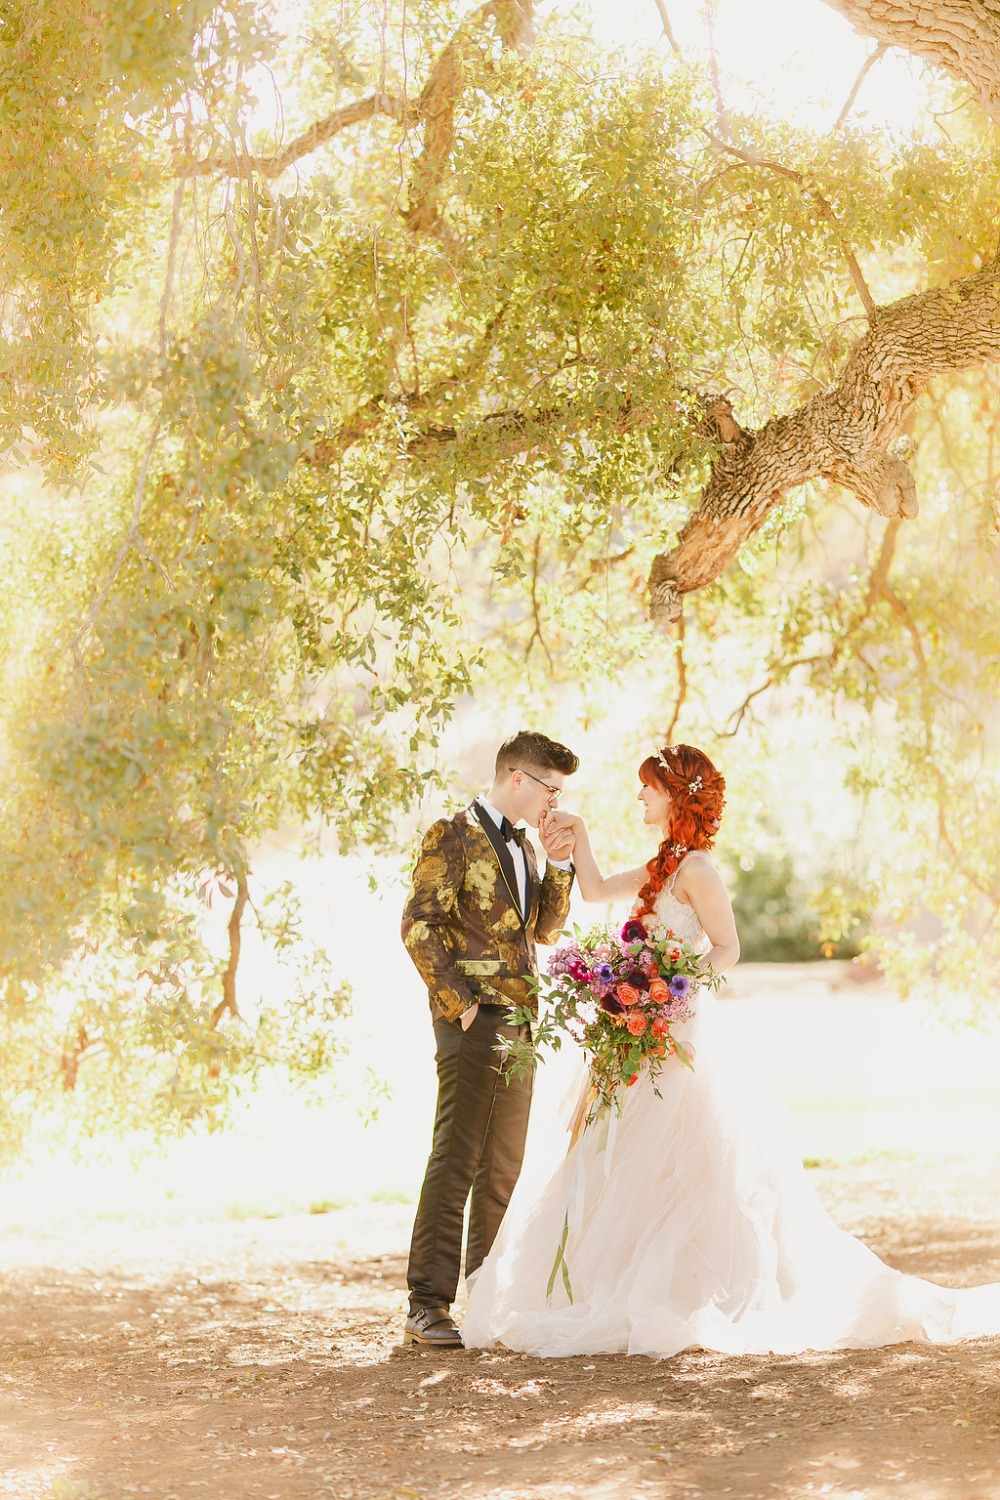 Floral Fairytale Shoot at Heavenly Oaks Flower Farm Groom Kissing Bride's Hand